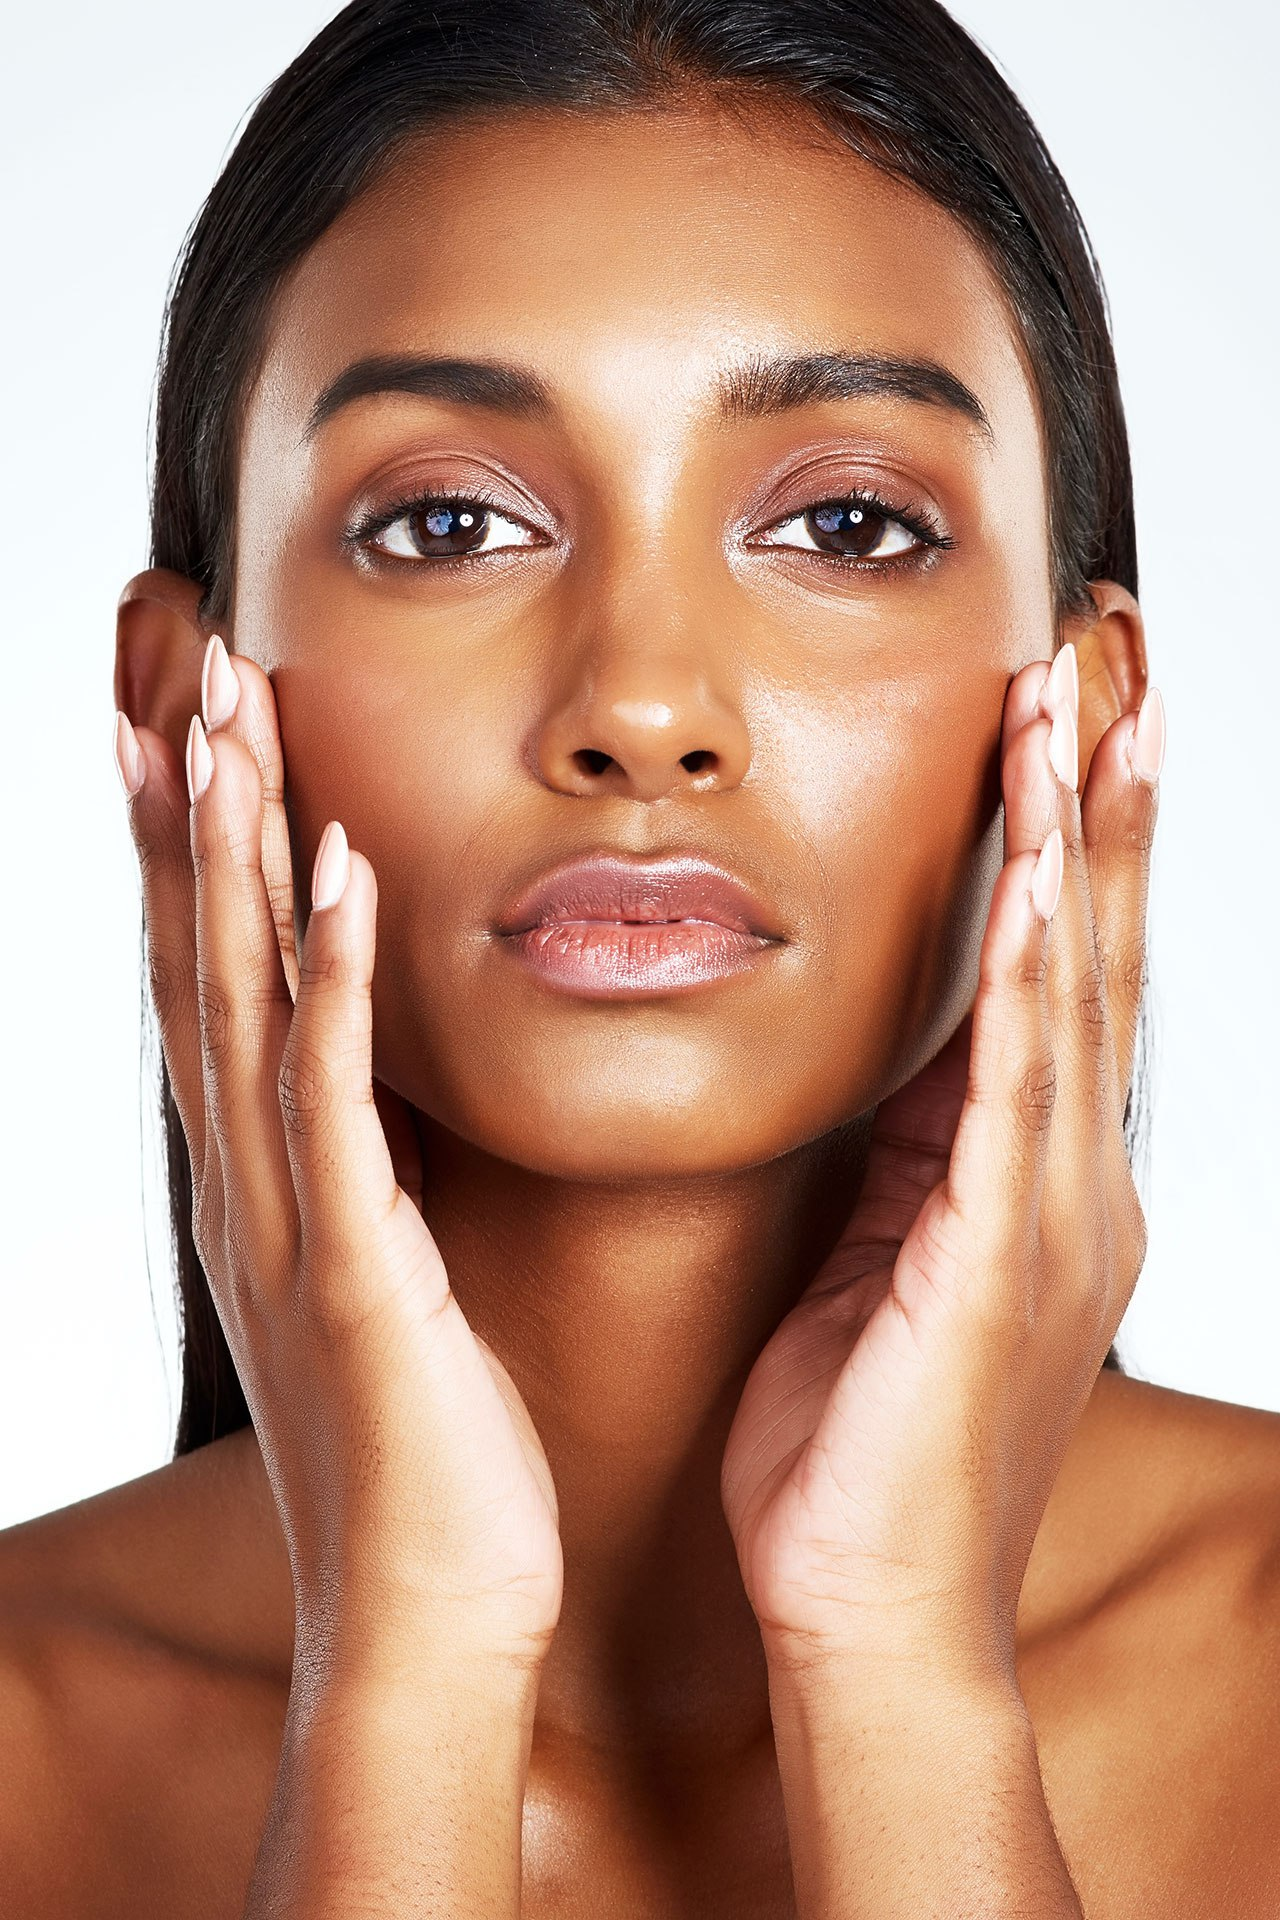 Skincare SOS: the top 5 natural ingredients to soothe and heal skin